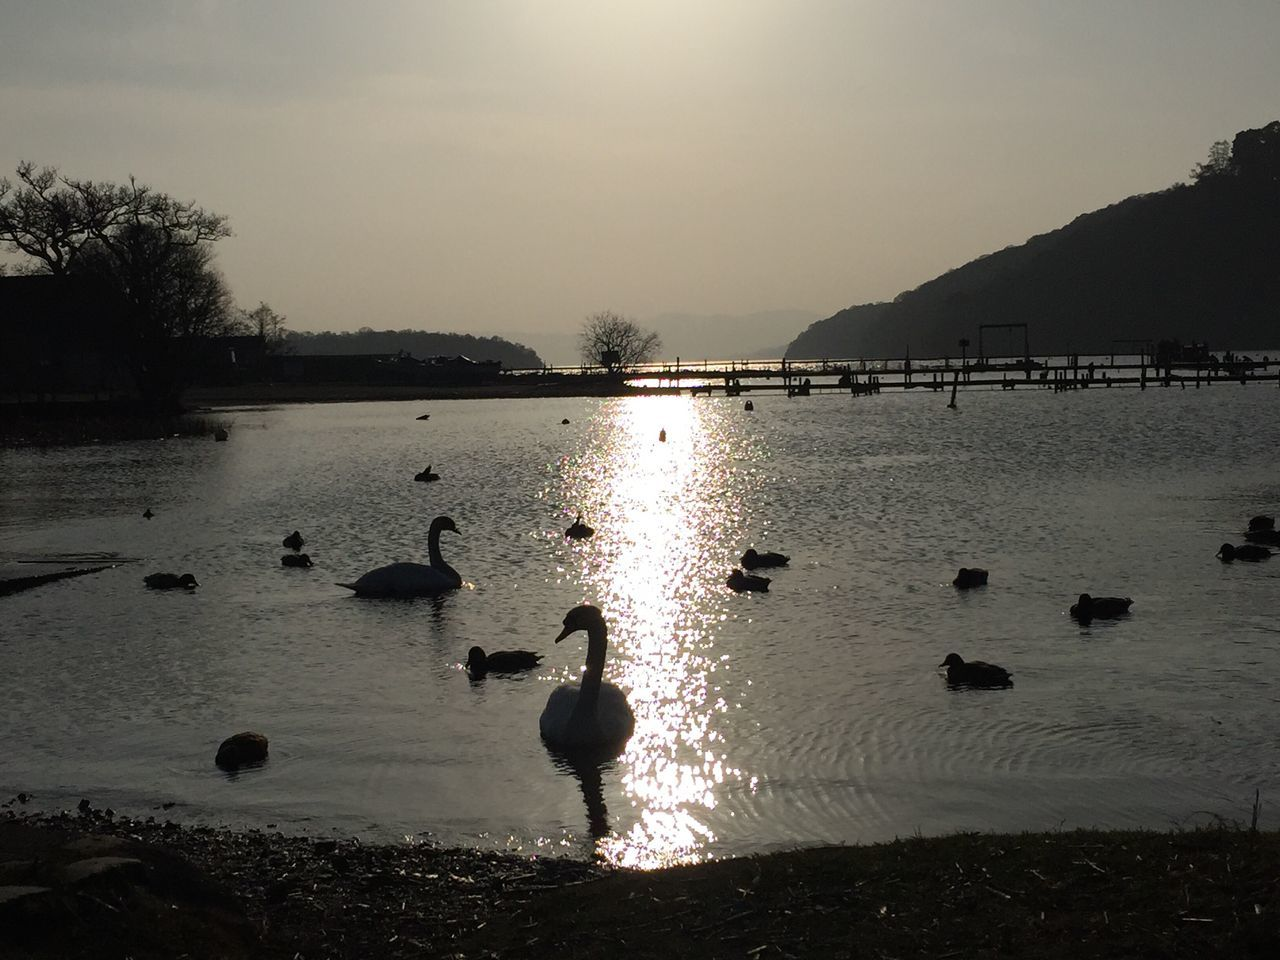 LochLomond Scotland Sky Water Outdoors Day Swan Swimming Animals In The Wild Waterfront Scenery Shots Tranquility Rural Scene Nature Bird Duck Beauty In Nature Outdoor Photography Animal Themes Naturelovers Sunbeam Silhouette Beautiful Nature Landscape_Collection Scotlandsbeauty